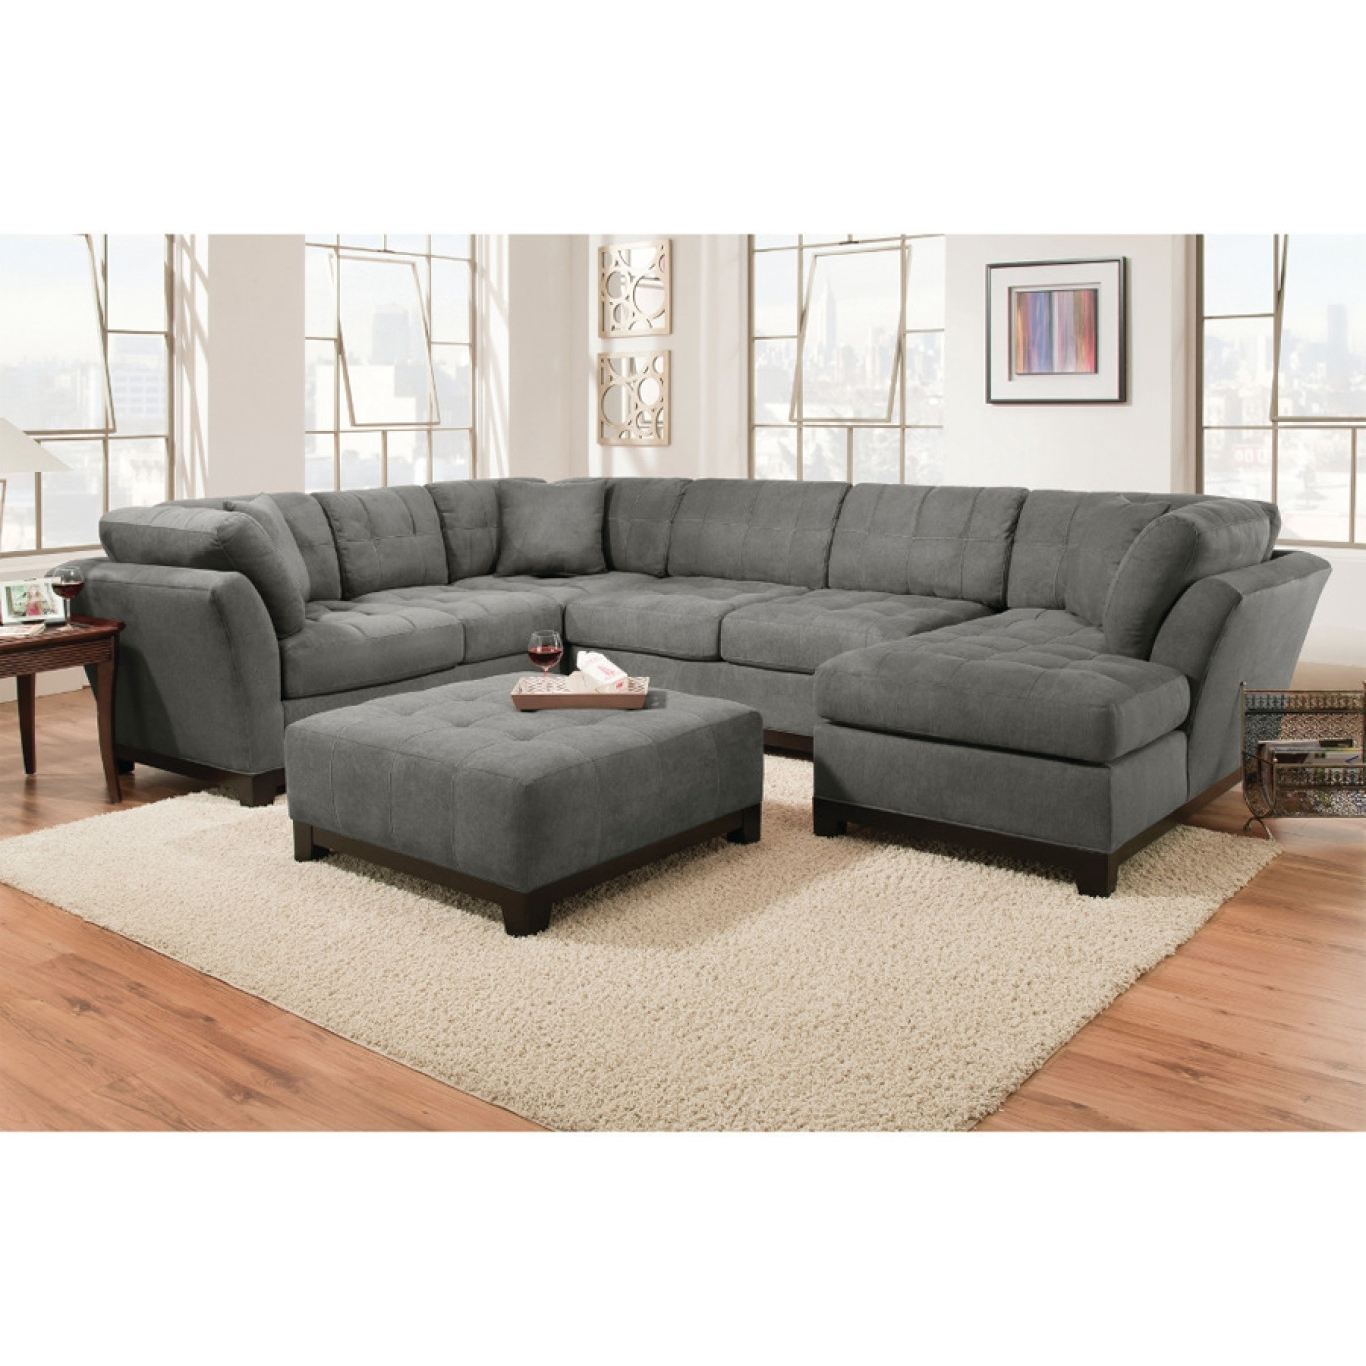 Most Up To Date Bassett Furniture Greensboro Nc Inside Greensboro Nc Sectional Sofas (View 2 of 20)